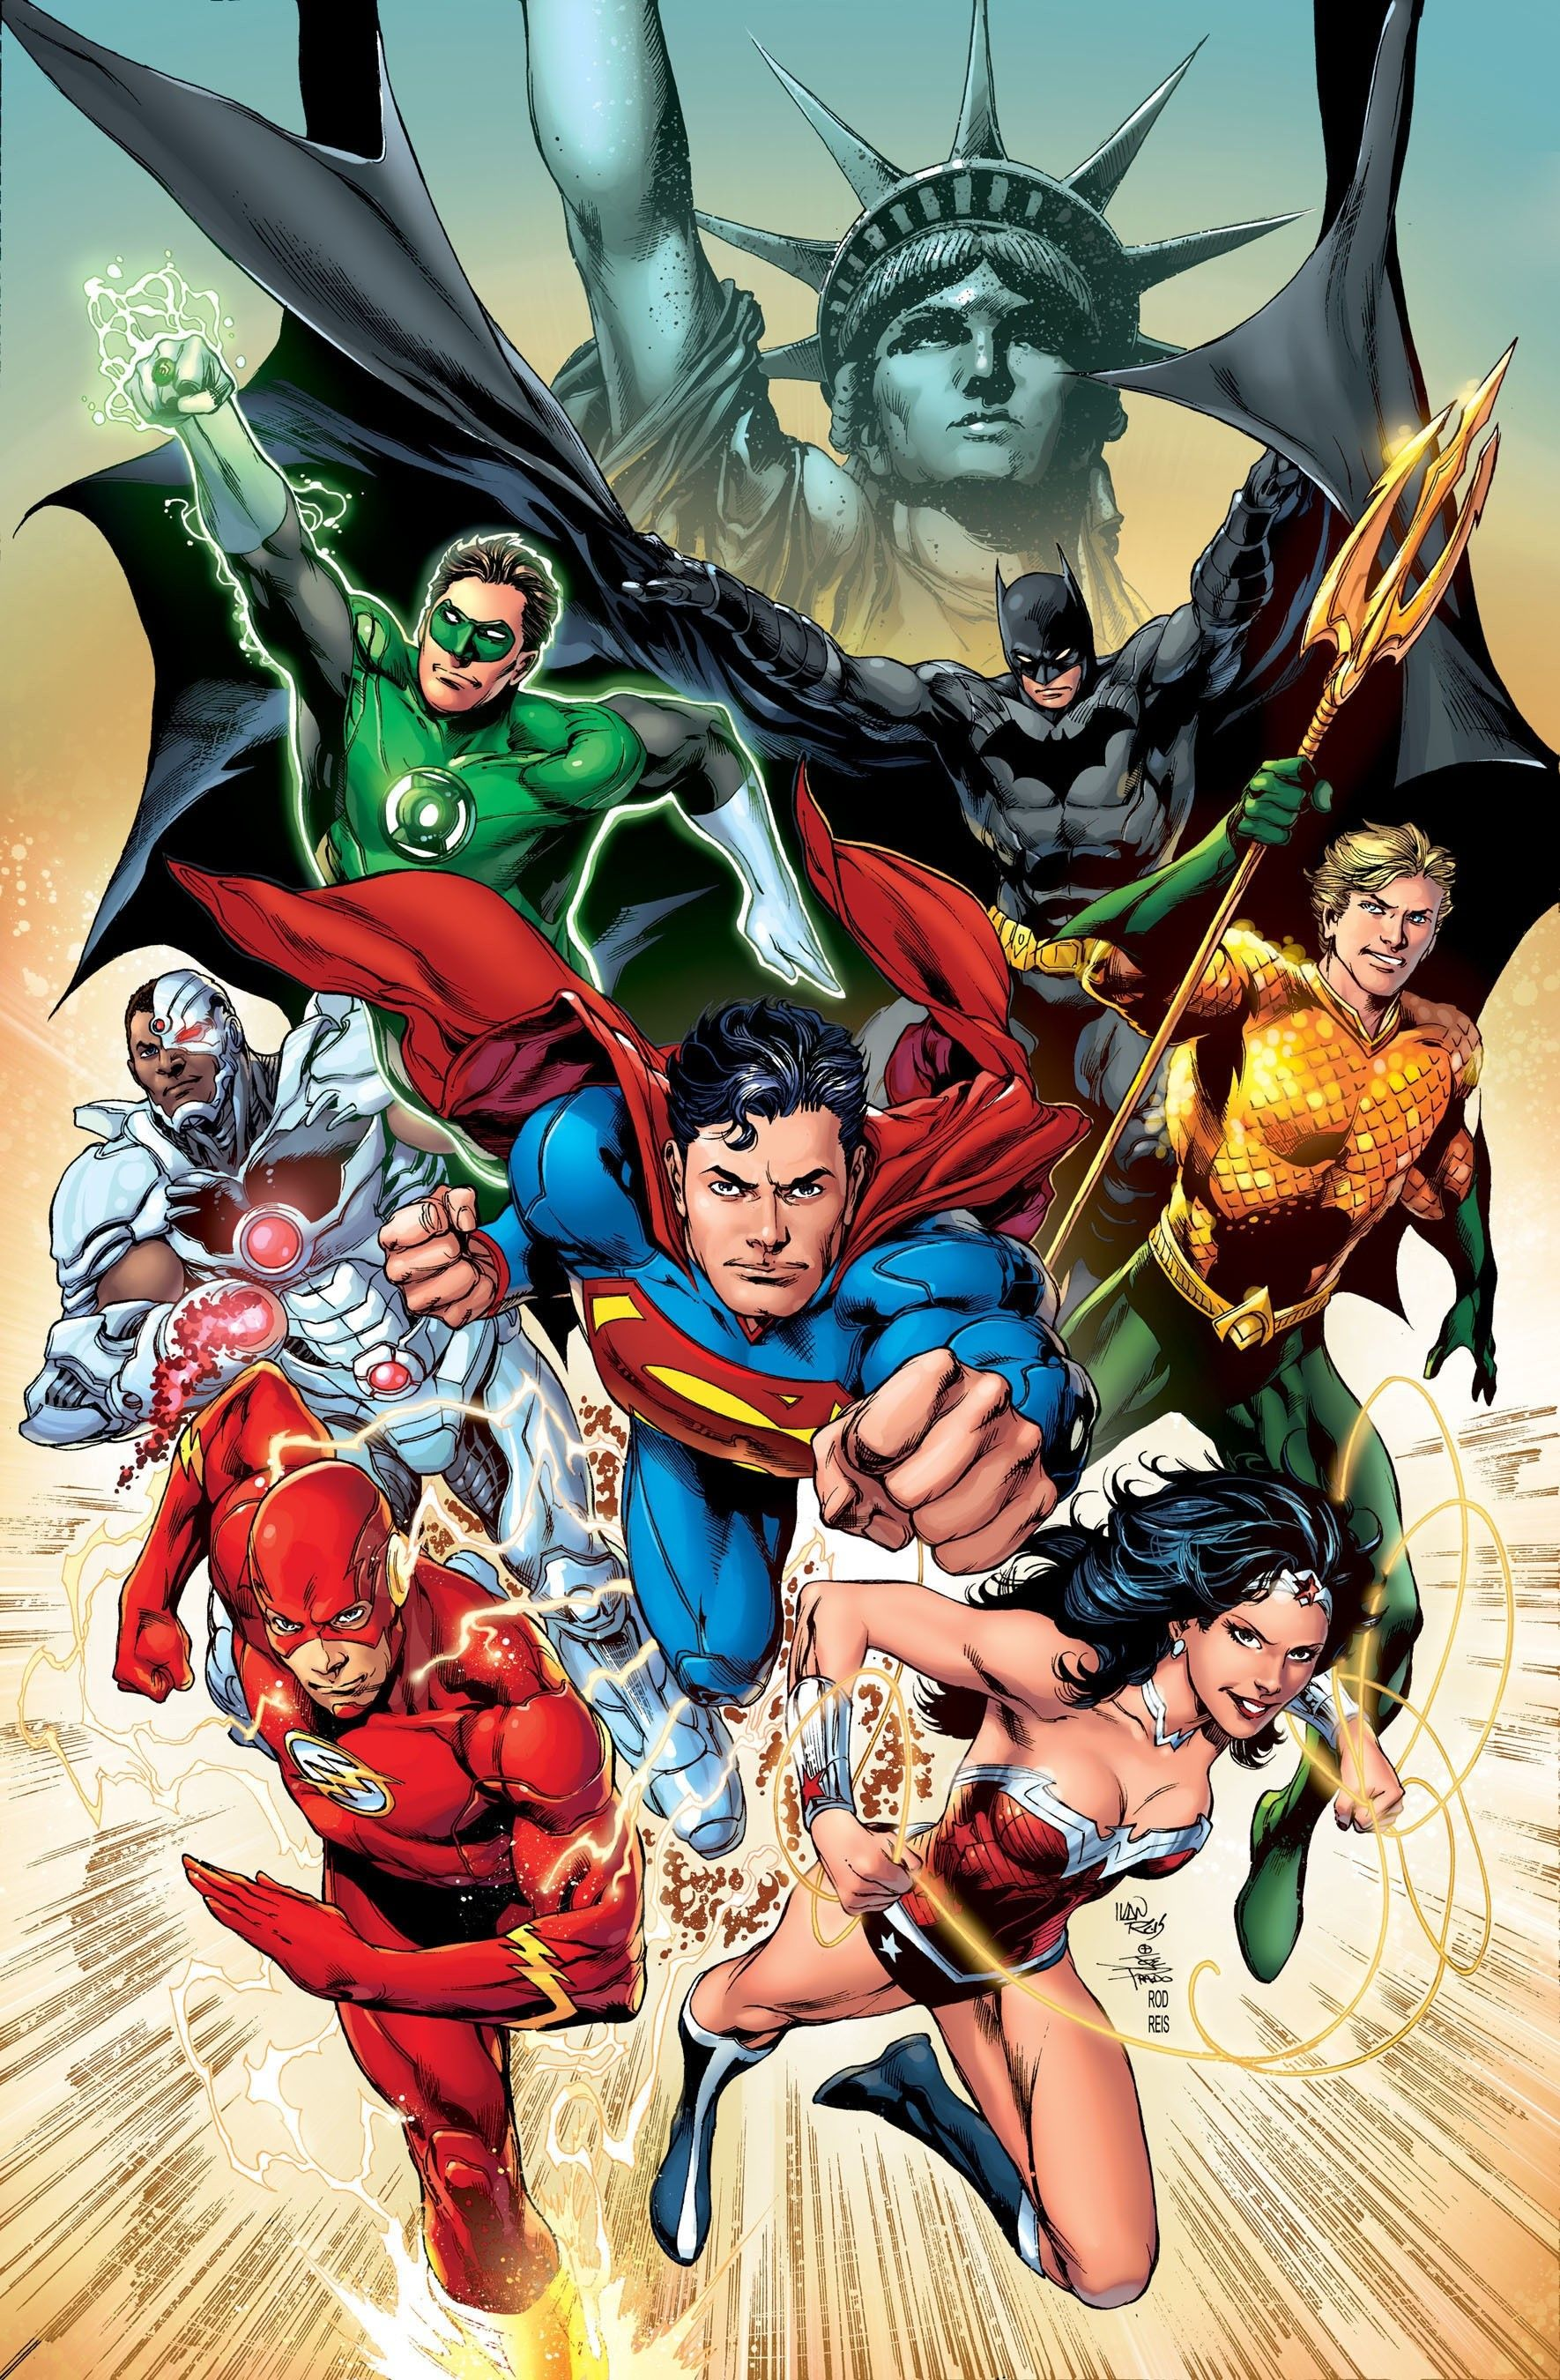 Reis 4th Printing Textless | Justice league superheroes, Justice league new  52, Comics